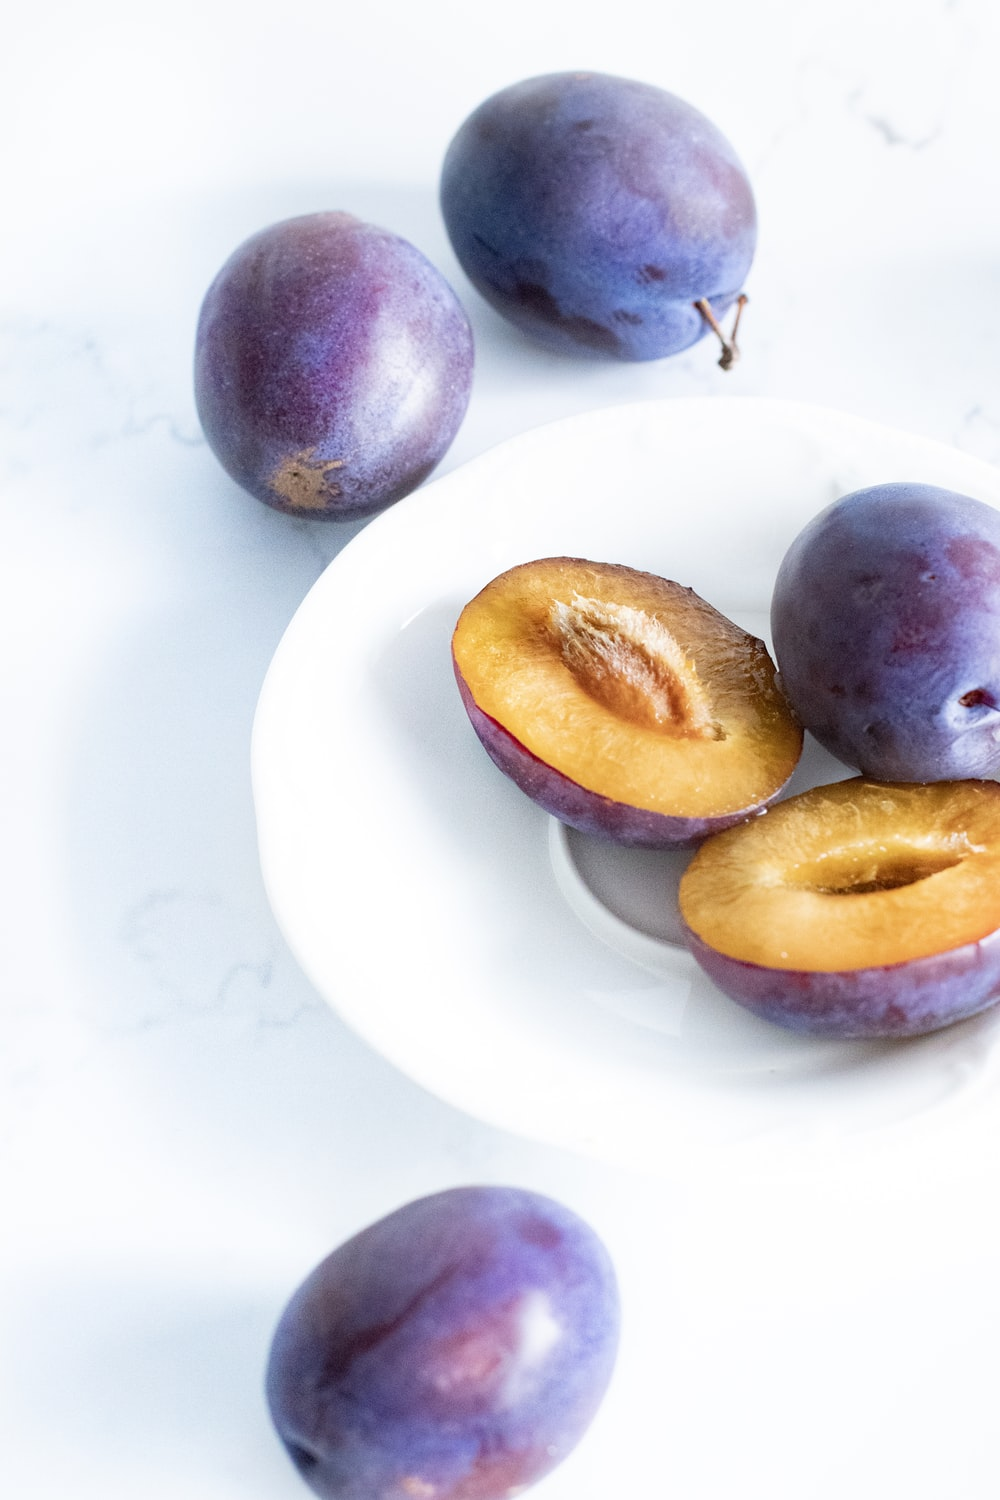 purple and yellow round fruits on white ceramic plate